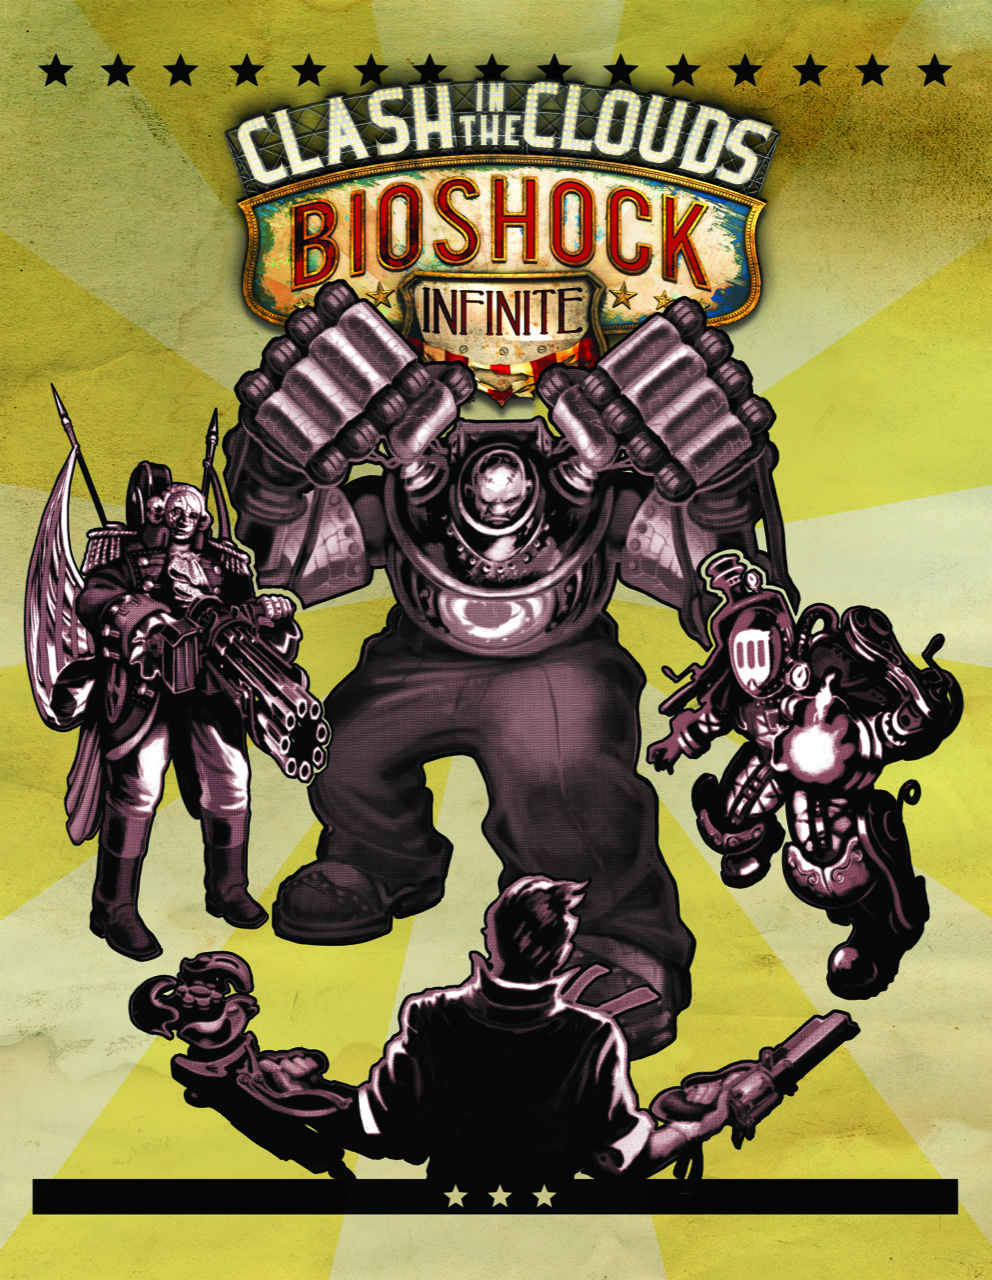 Bioshock Infinite DLC - Clash in the Clouds